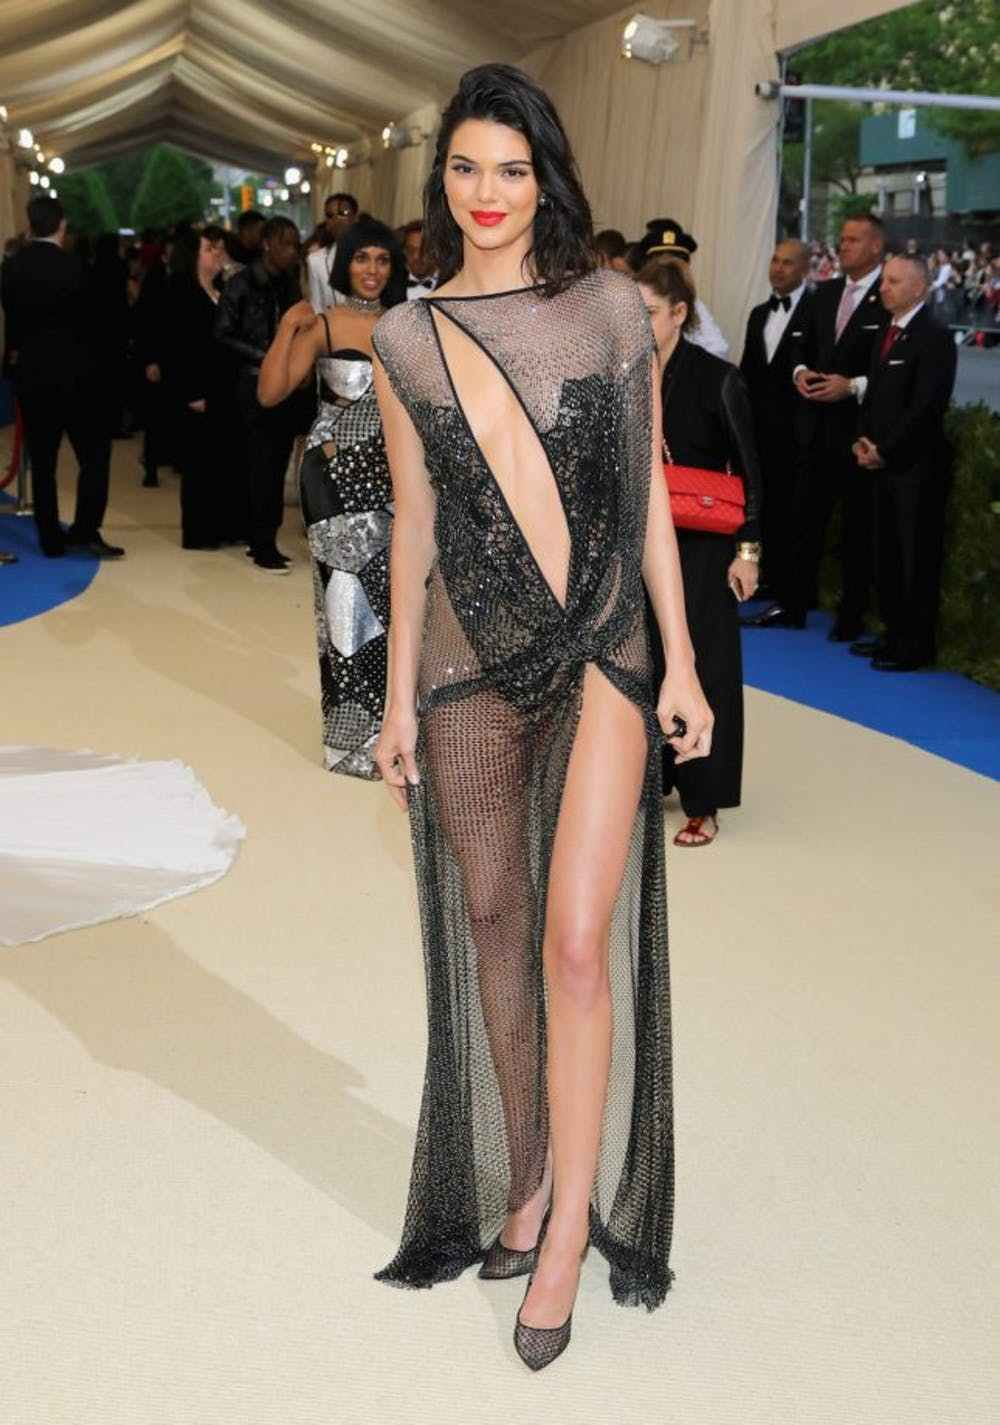 The most revealing red carpet dressing that will shock you